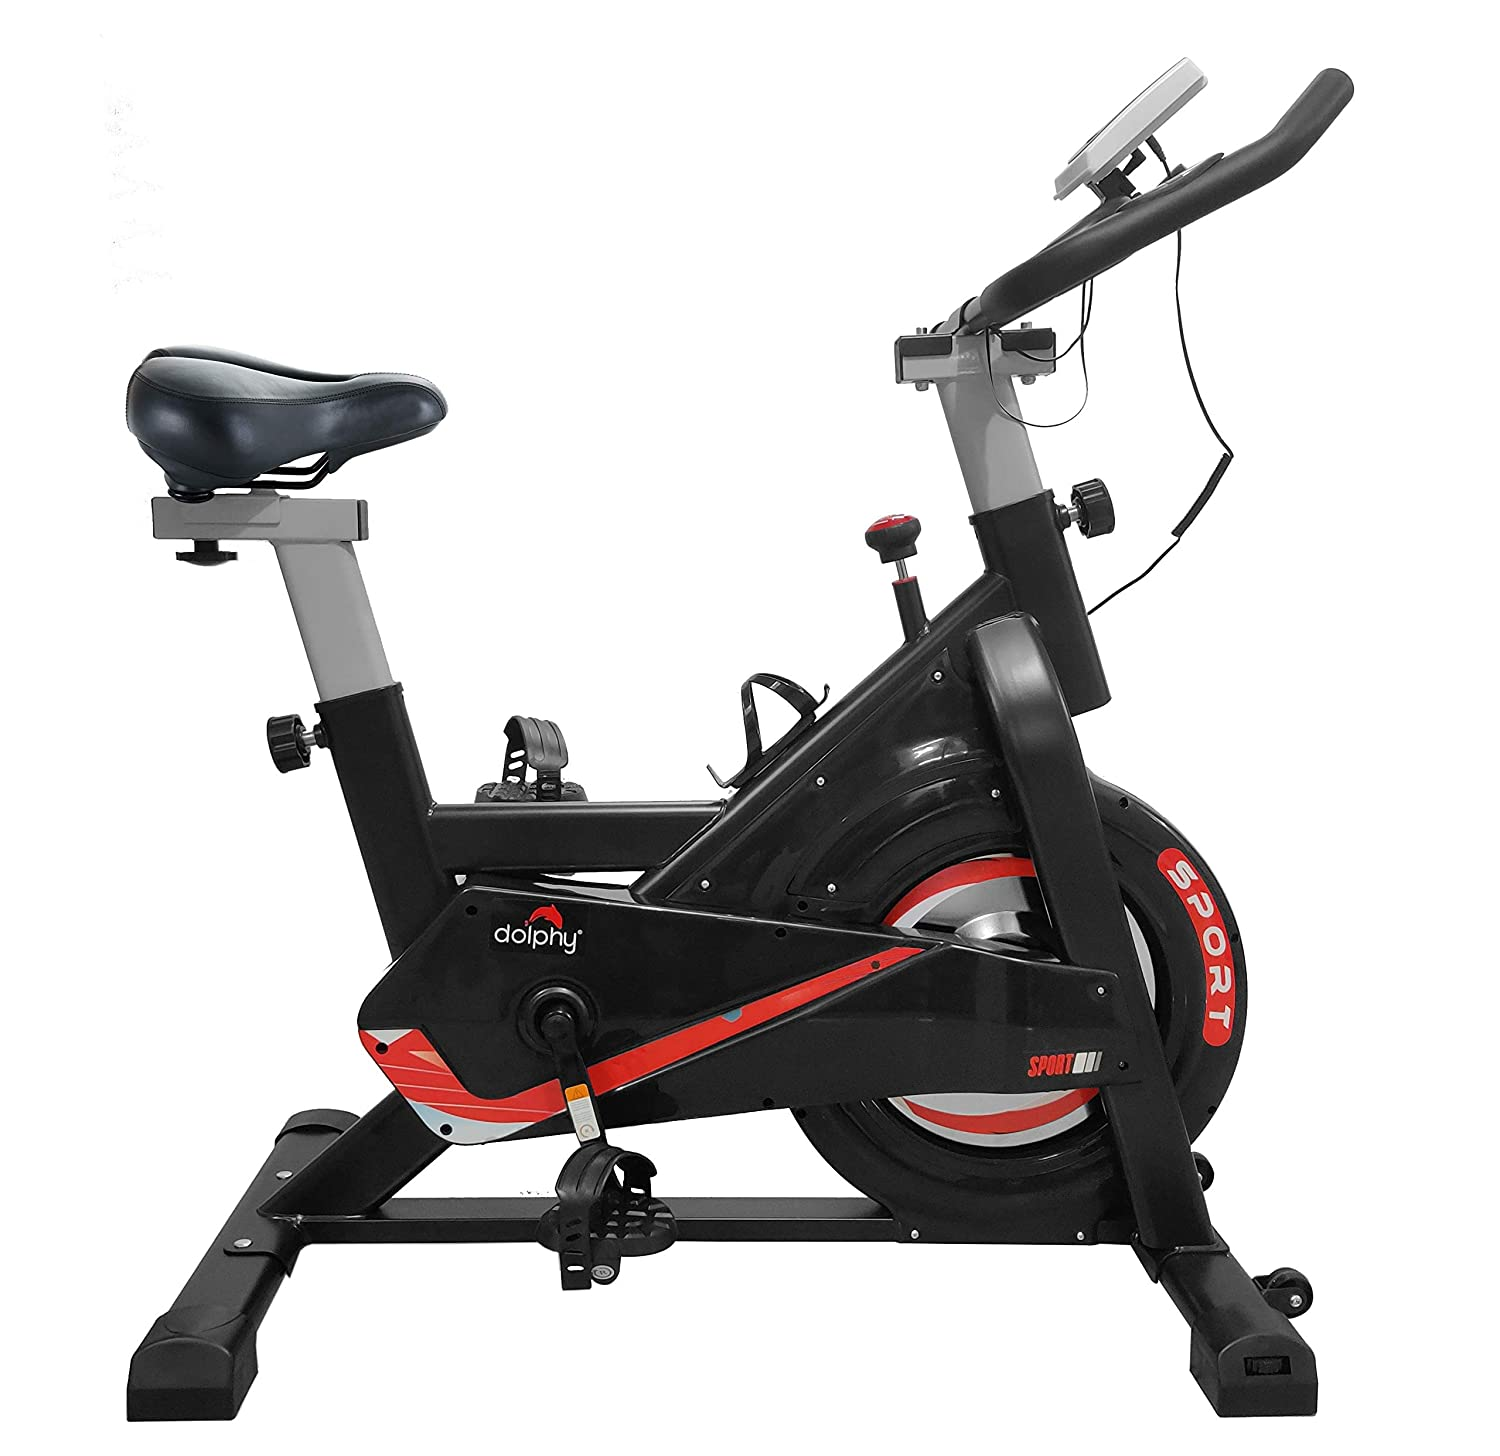 Dolphy Spinning Exercise Bike For Home